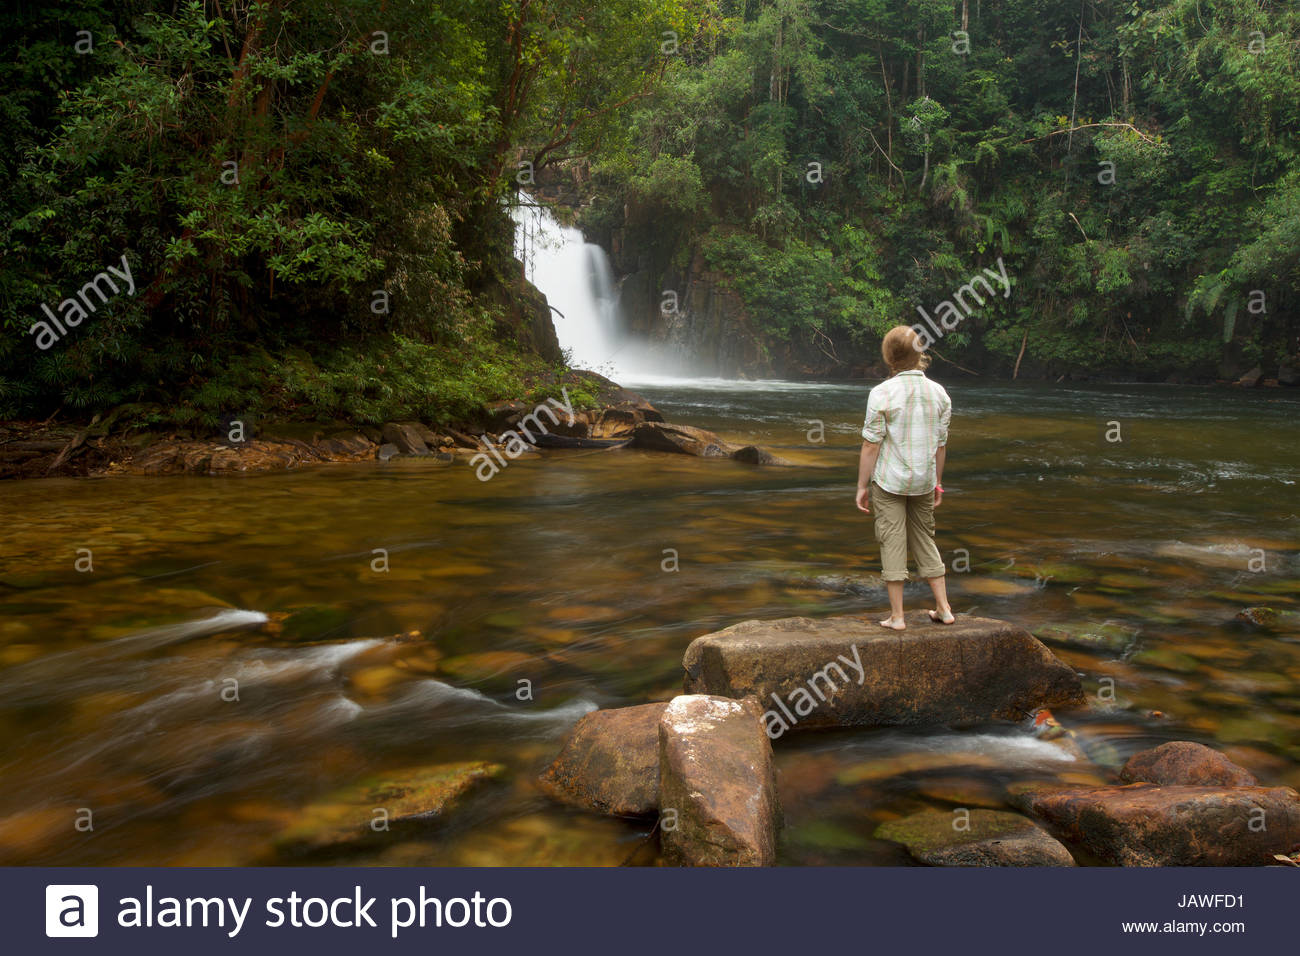 A girl watches Riam Berasap, the Falls of the Mists, which is the largest waterfall in Gunung Palung National Park. - Stock Image